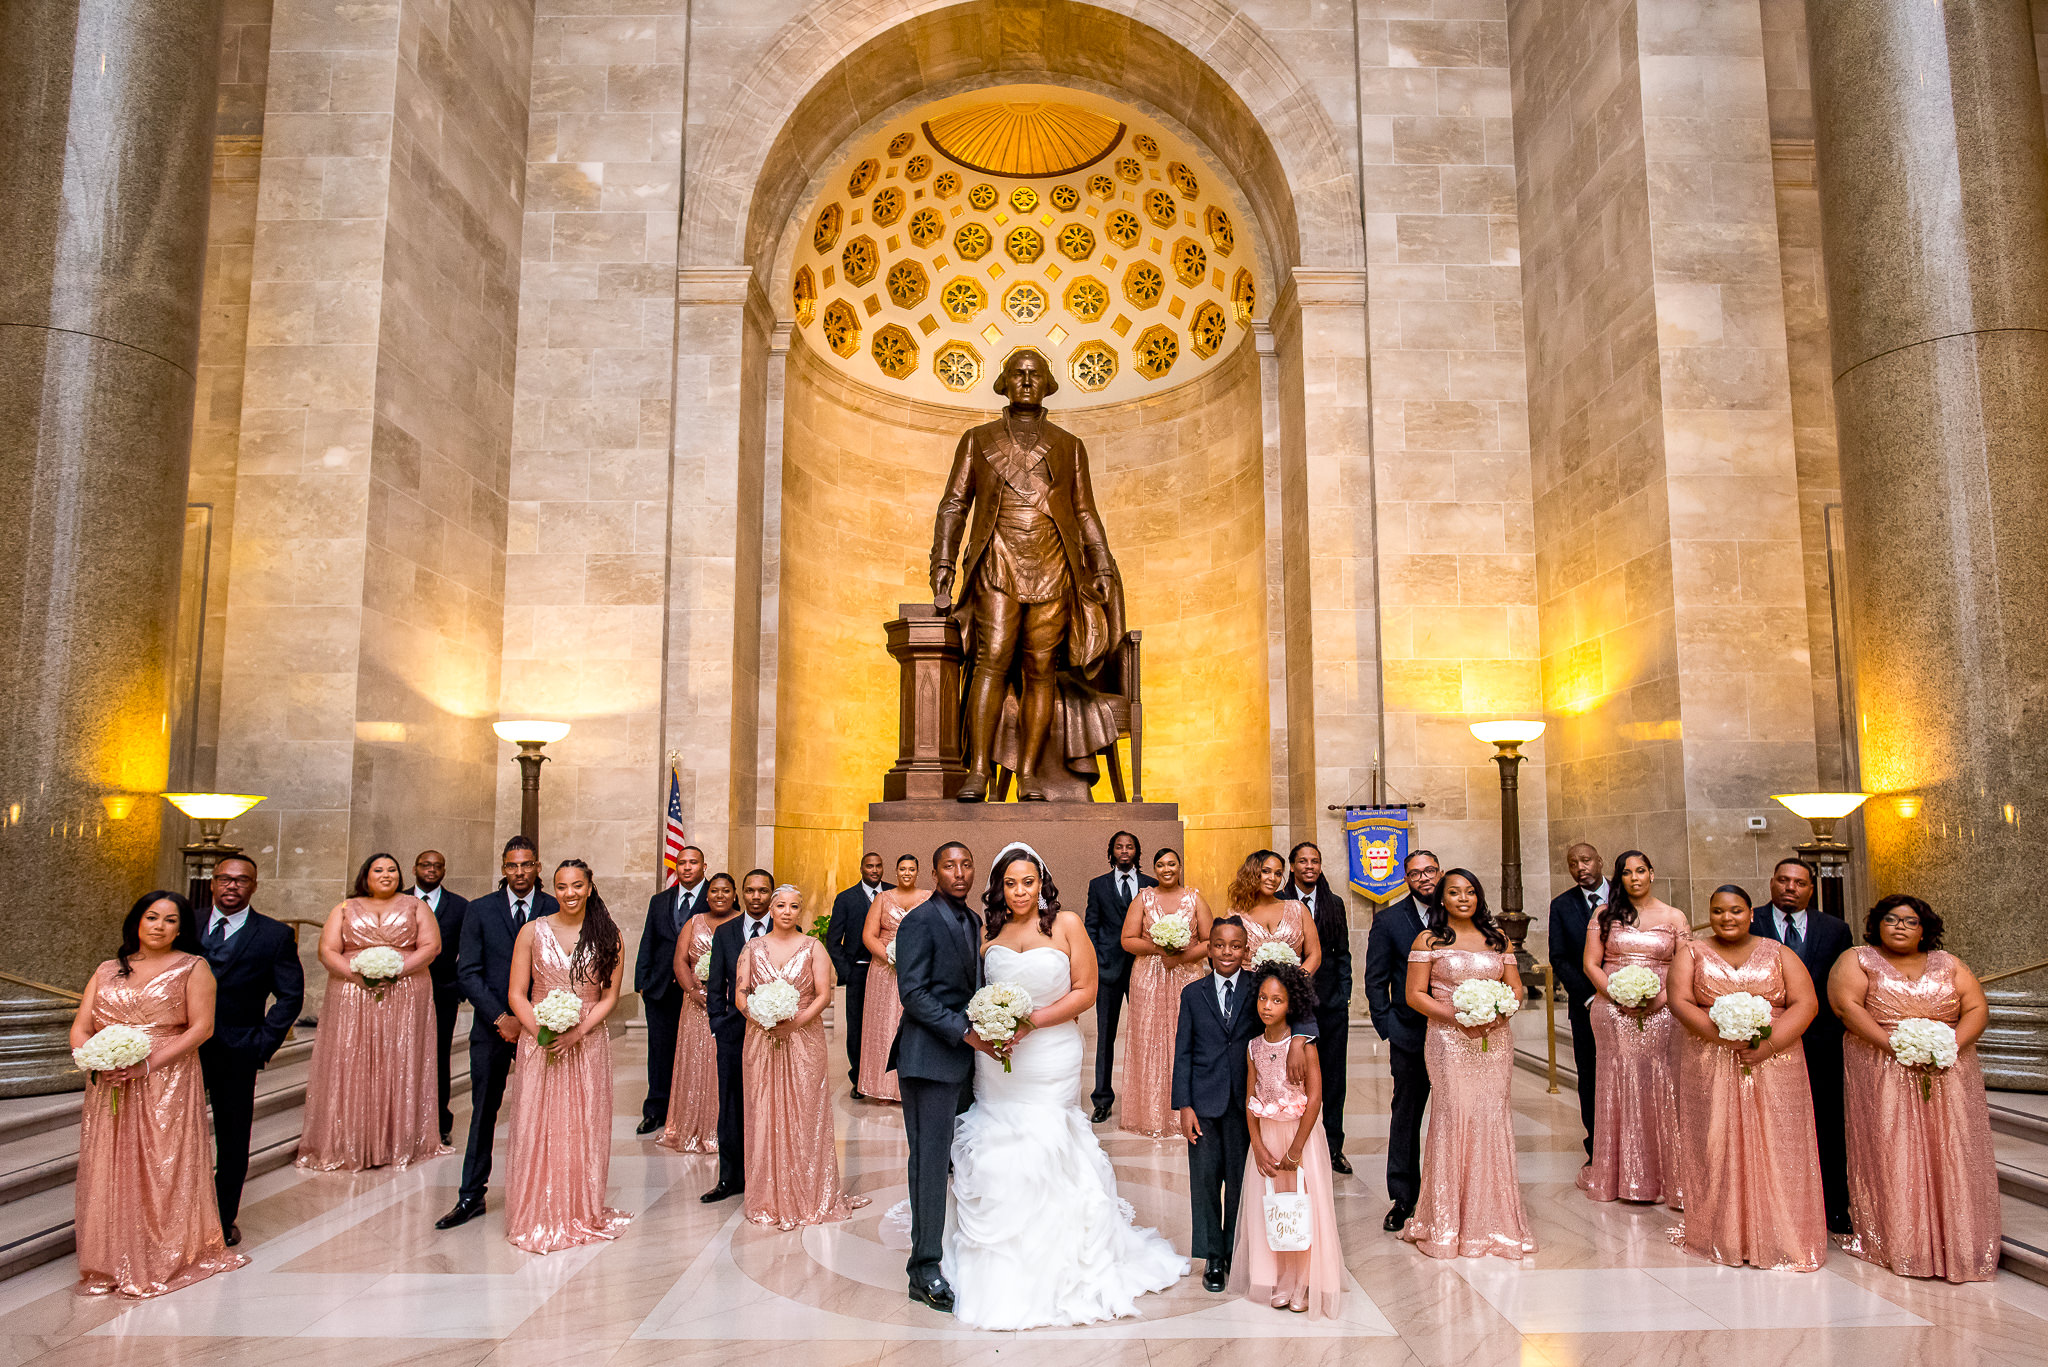 Wedding party group pose against statue in alcove- photo by Adibe Photography